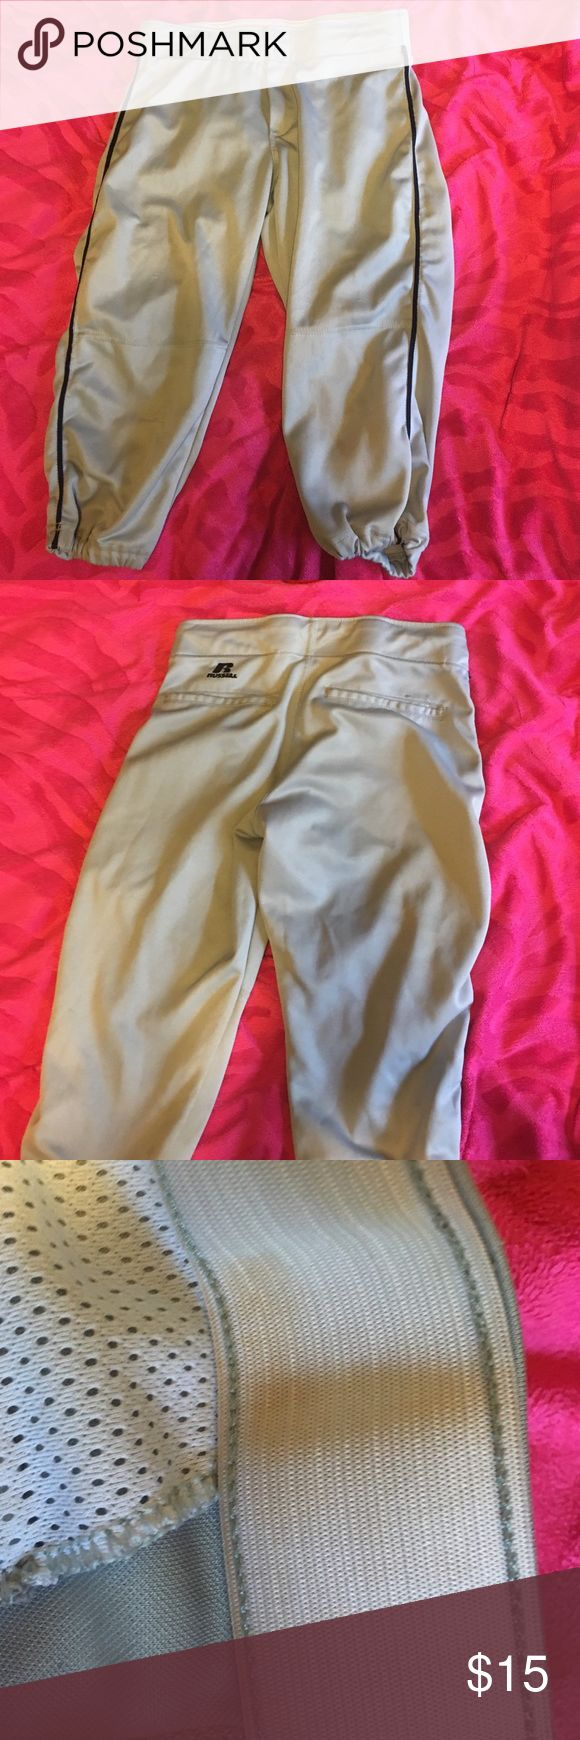 🔴FLASH SALE🔴 SOFTBALL PANTS These are gray with a navy blue stripe. They are in pretty good shape I couple picks here and there but they arnt noticing everyone. There is a little dirt on the inside band but no visible stains on the outside. Feel free to ask any questions or make an offer! Russell Pants Capris